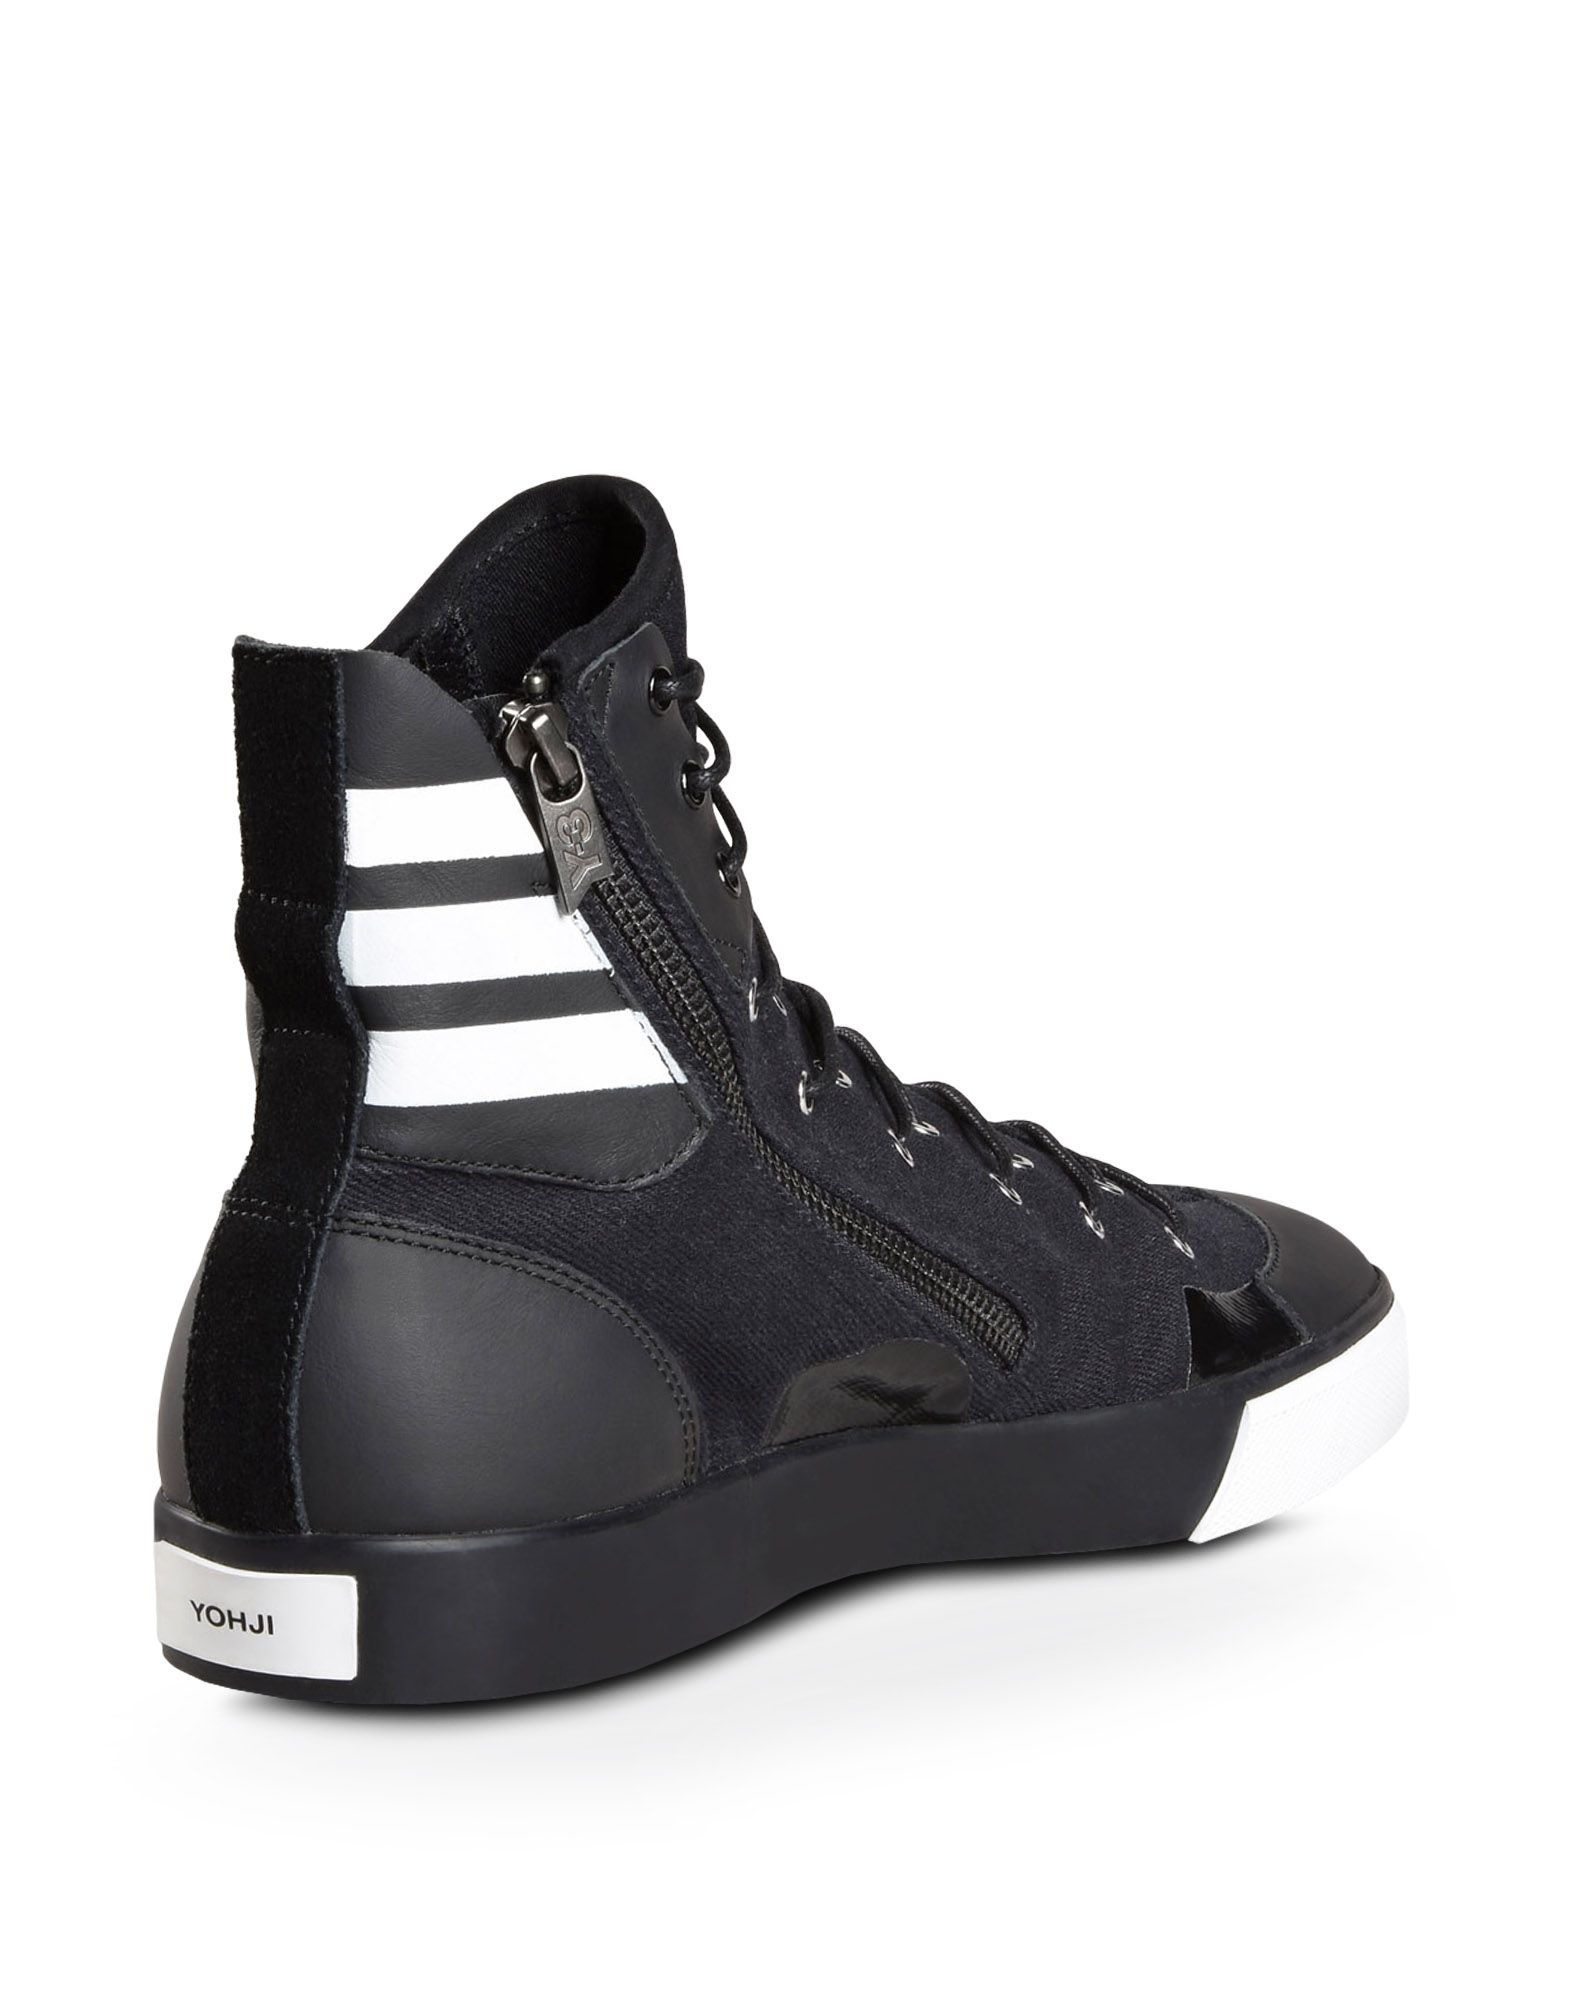 Y-3 SEN HIGH SHOES unisex Y-3 adidas